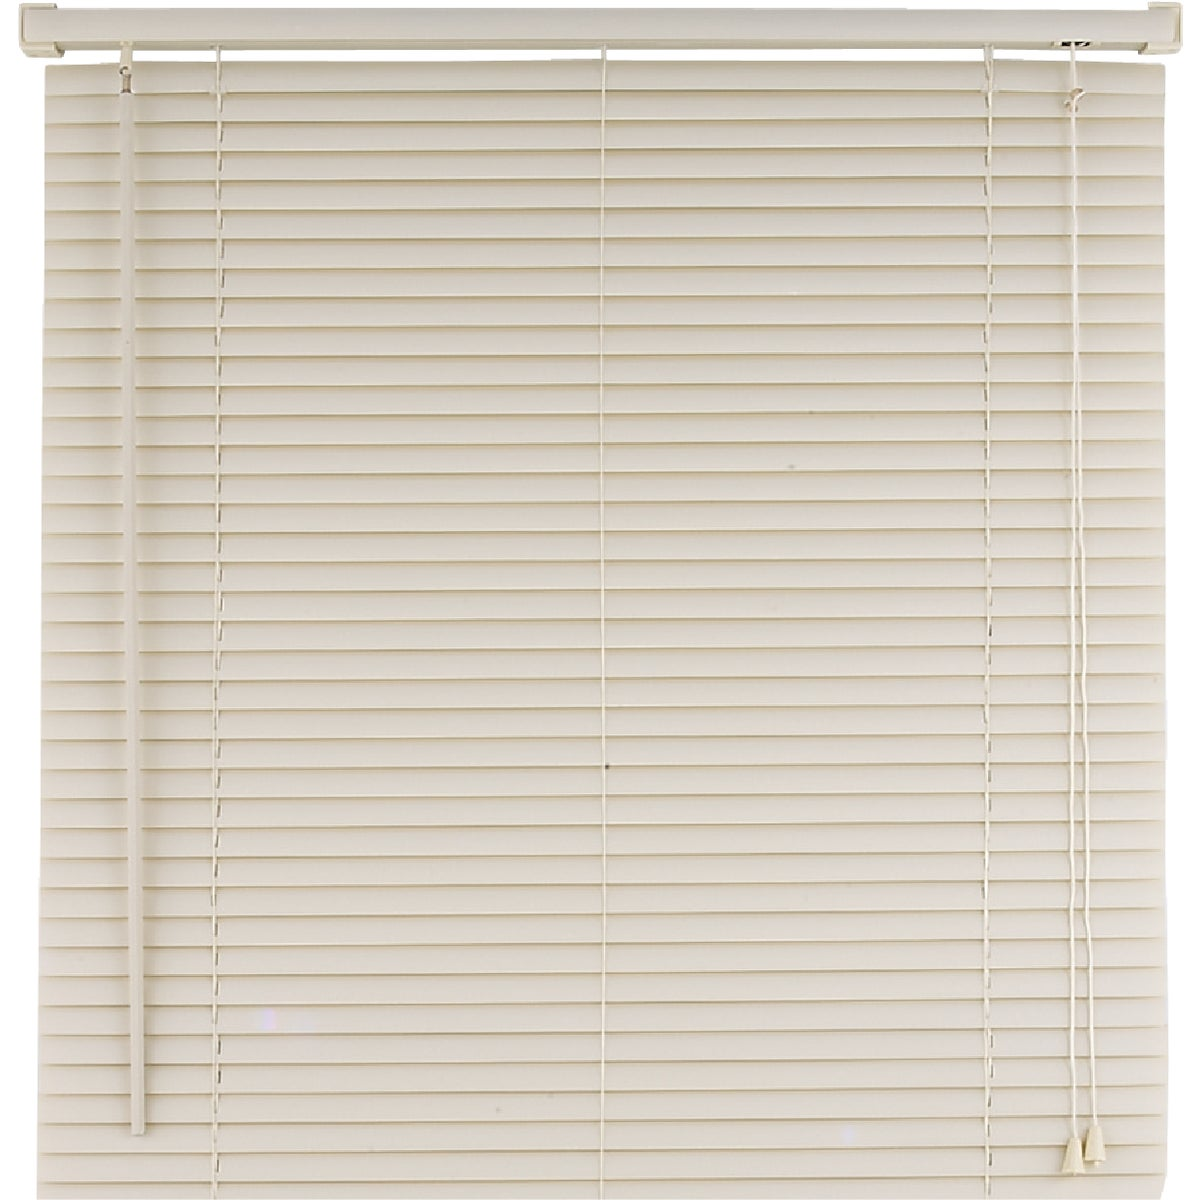 52X64 ALABASTER BLIND - 5264-453 by Lotus Wind Incom